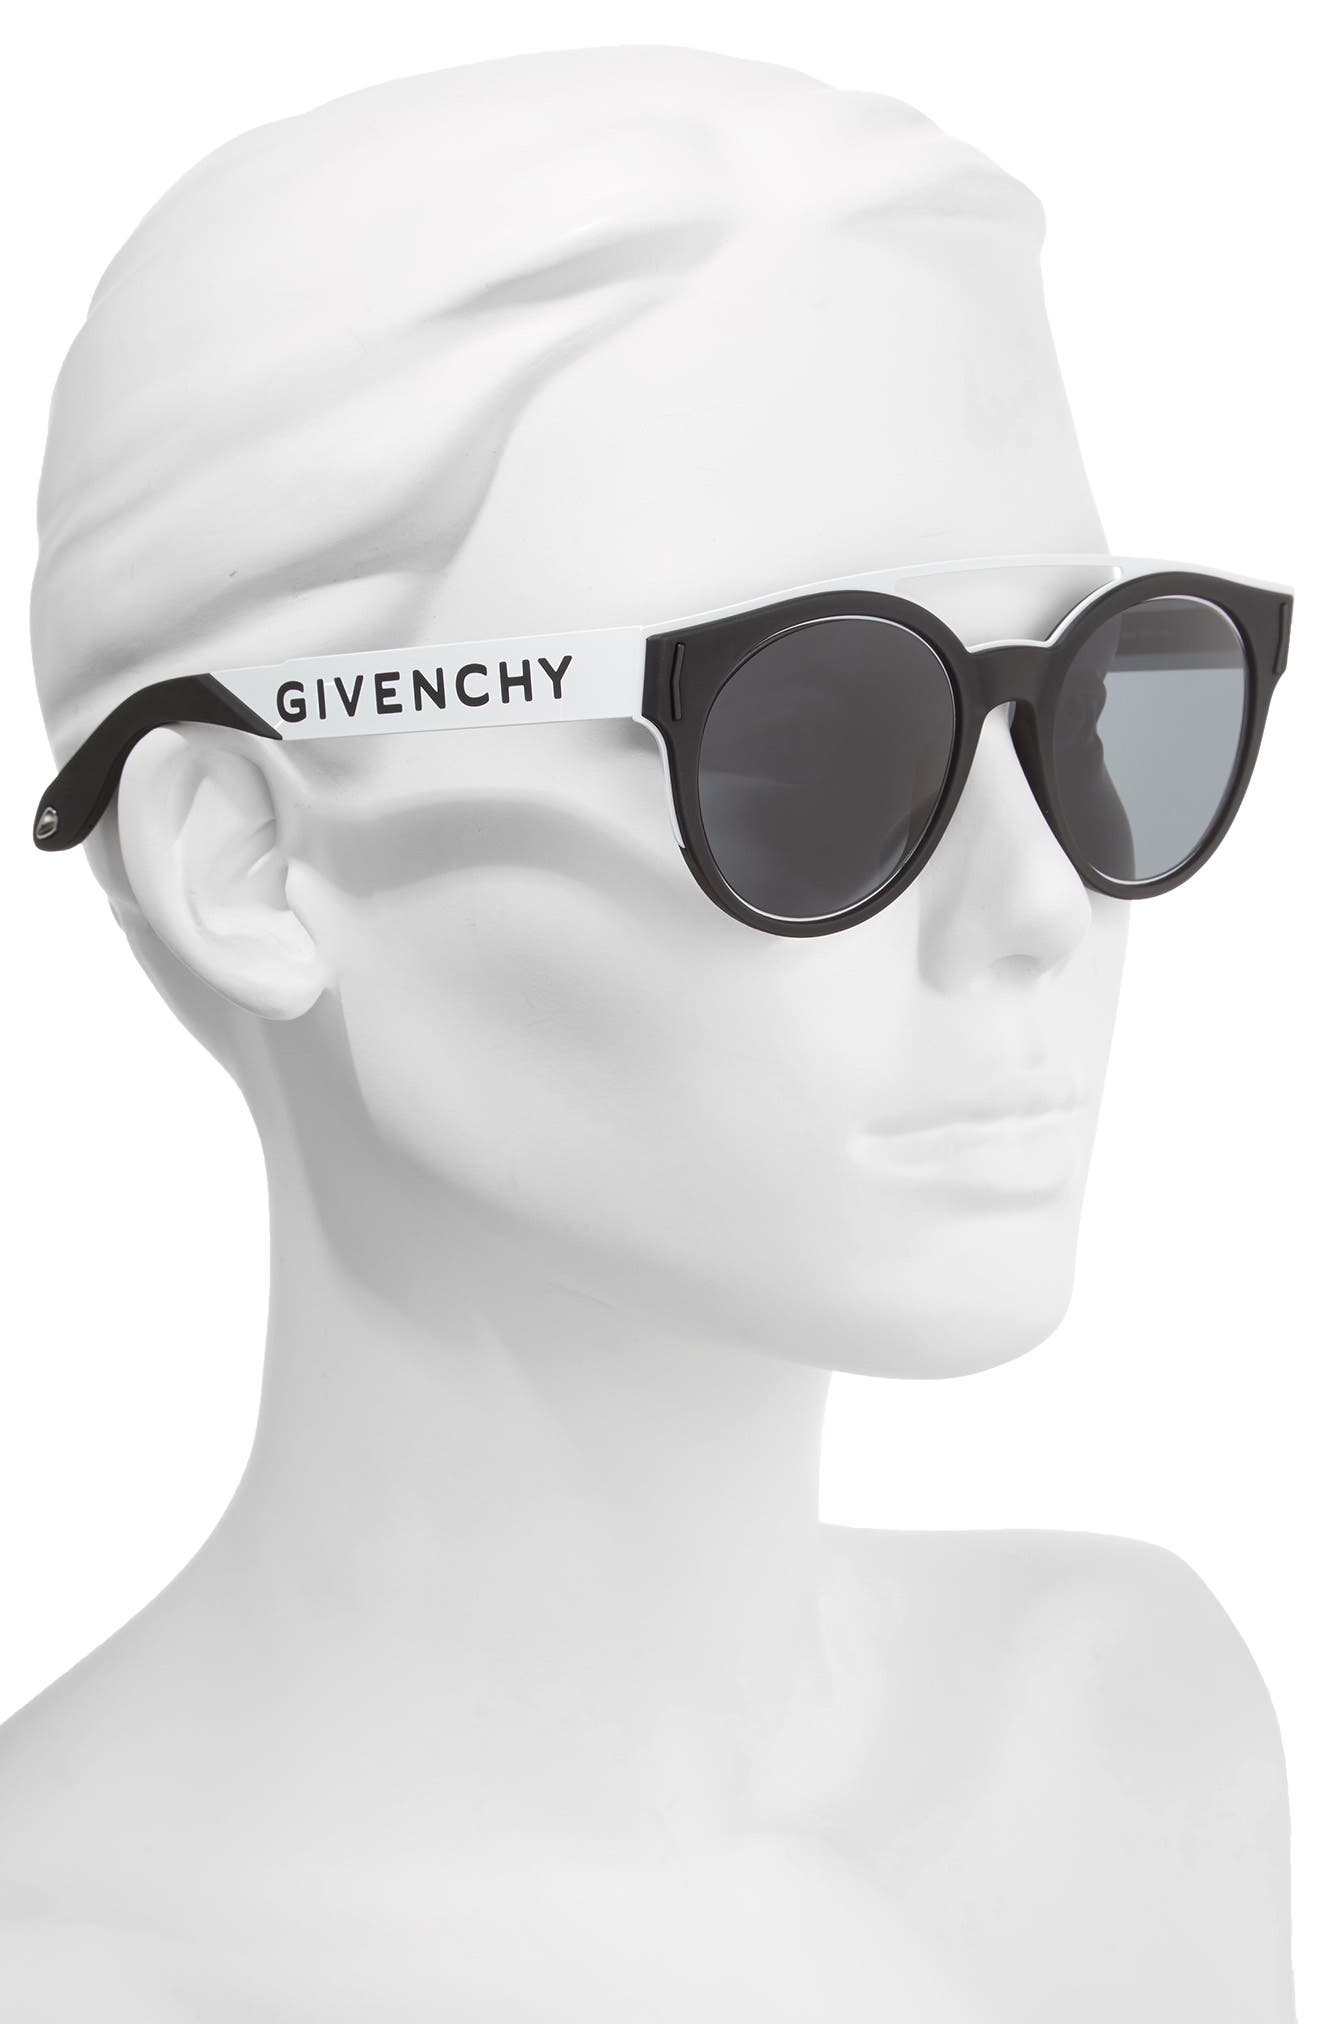 0bffc7e2d6c Givenchy Sunglasses for Women